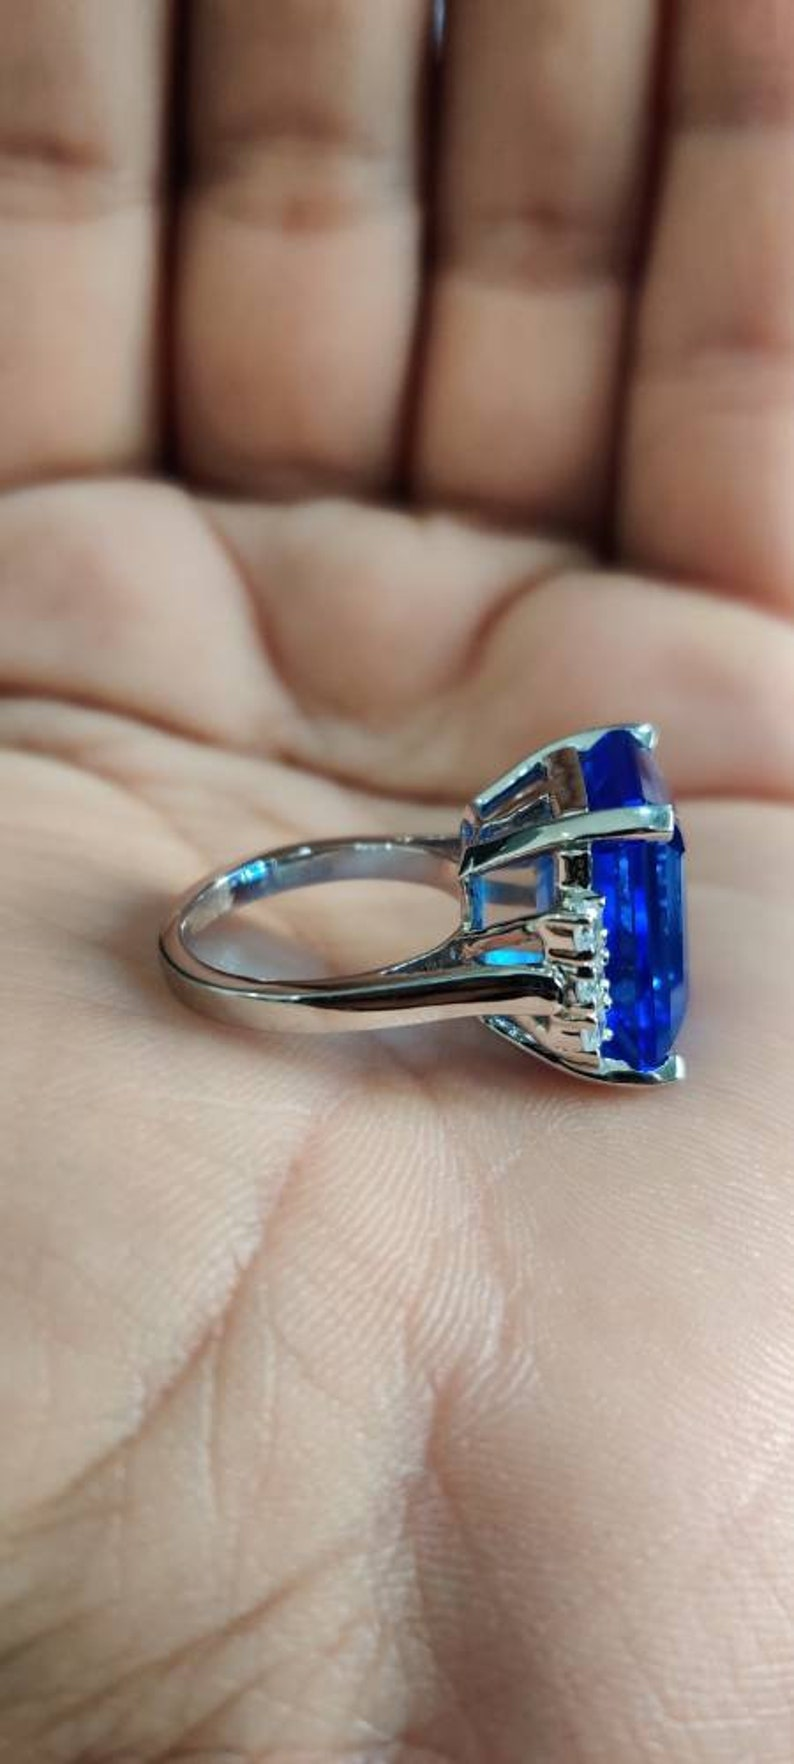 6 Carat Emerald Cut Aquamarine Engagement Ring In Solid 925 Sterling Silver Anniversary Gifts Ring Blue Sapphire Ring Solitaire Ring